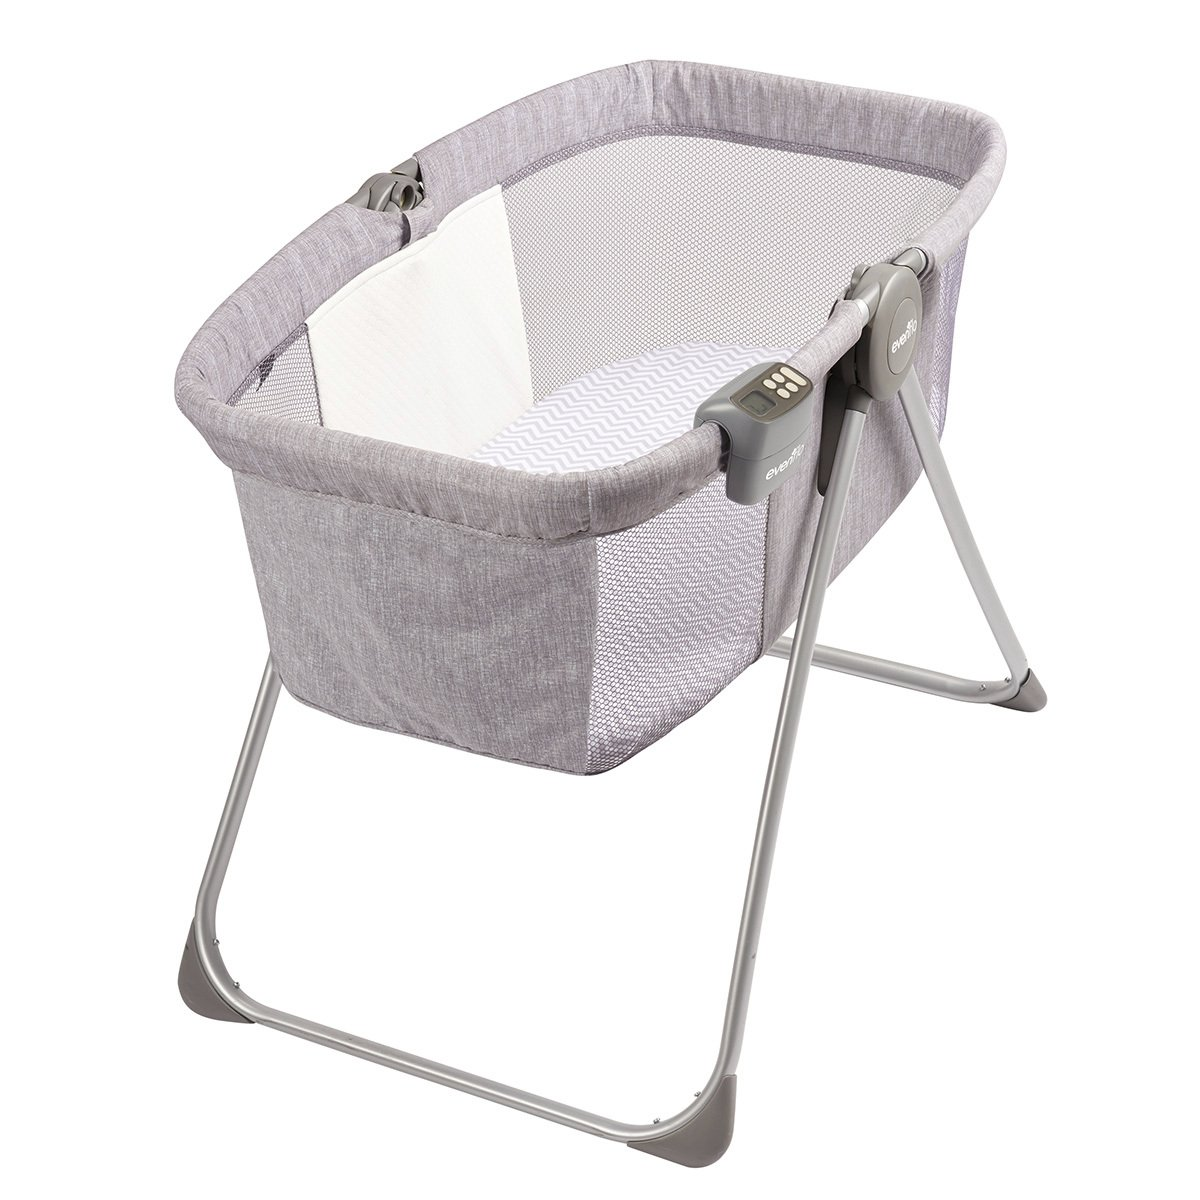 Evenflo Loft Portable Bassinet Grey 12112125